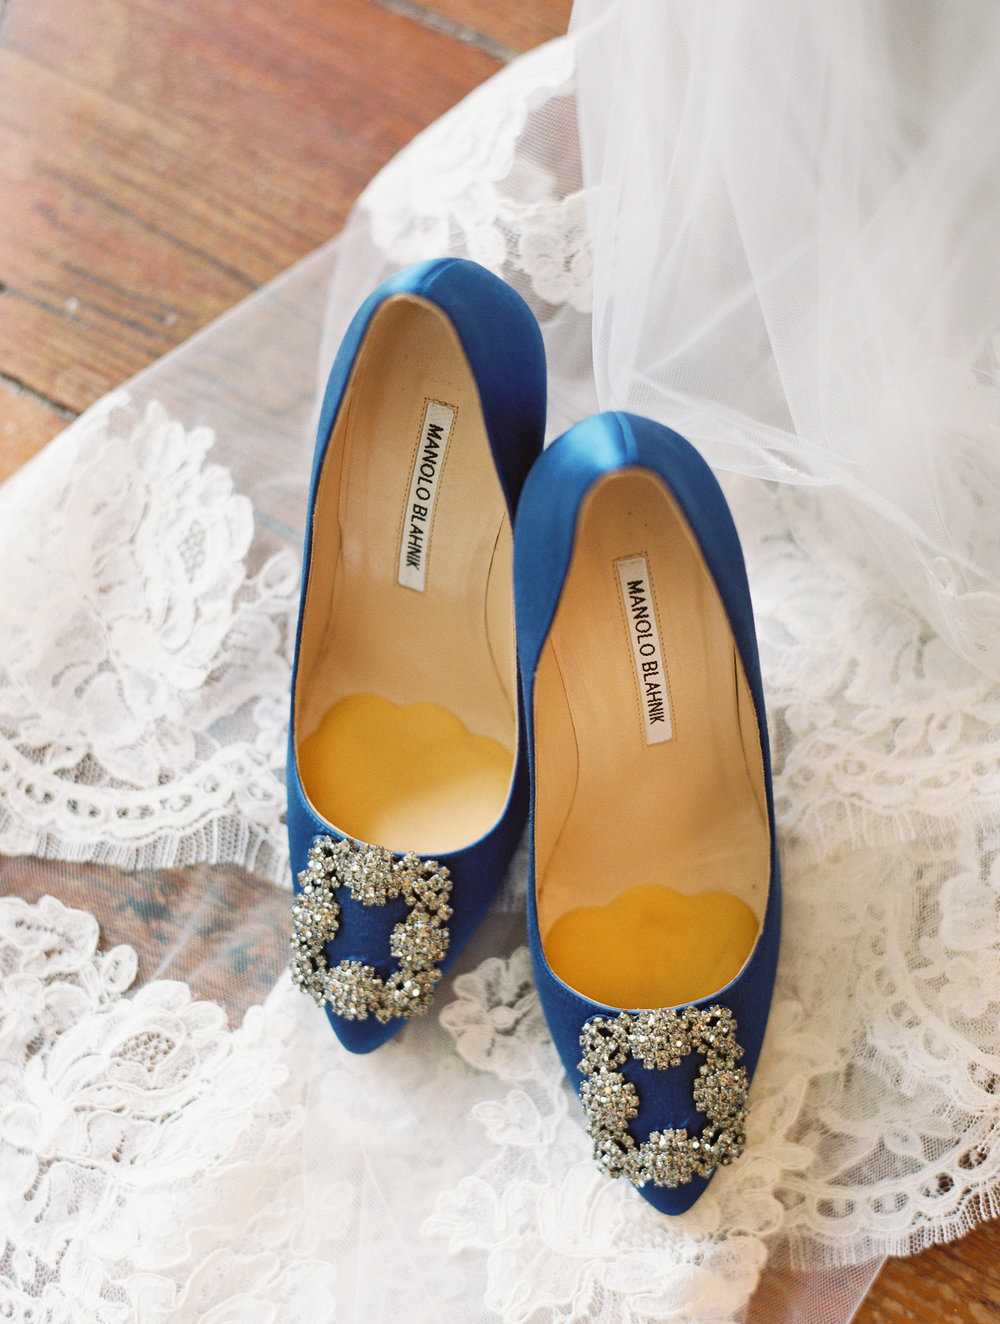 Blue Manolo Blahnik wedding shoes at Boone Hall Plantation  //  Wedding photography by Landon Jacob  //  A Lowcountry Wedding Magazine